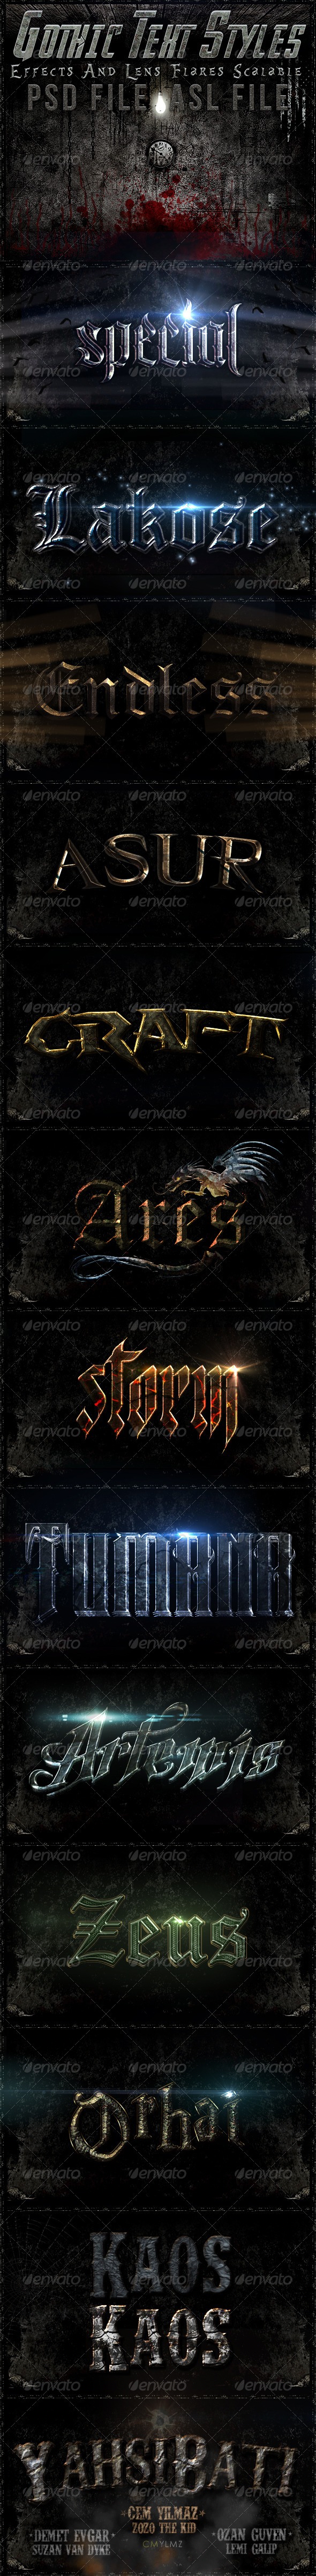 GraphicRiver Gothic Text Styles v1 4654769